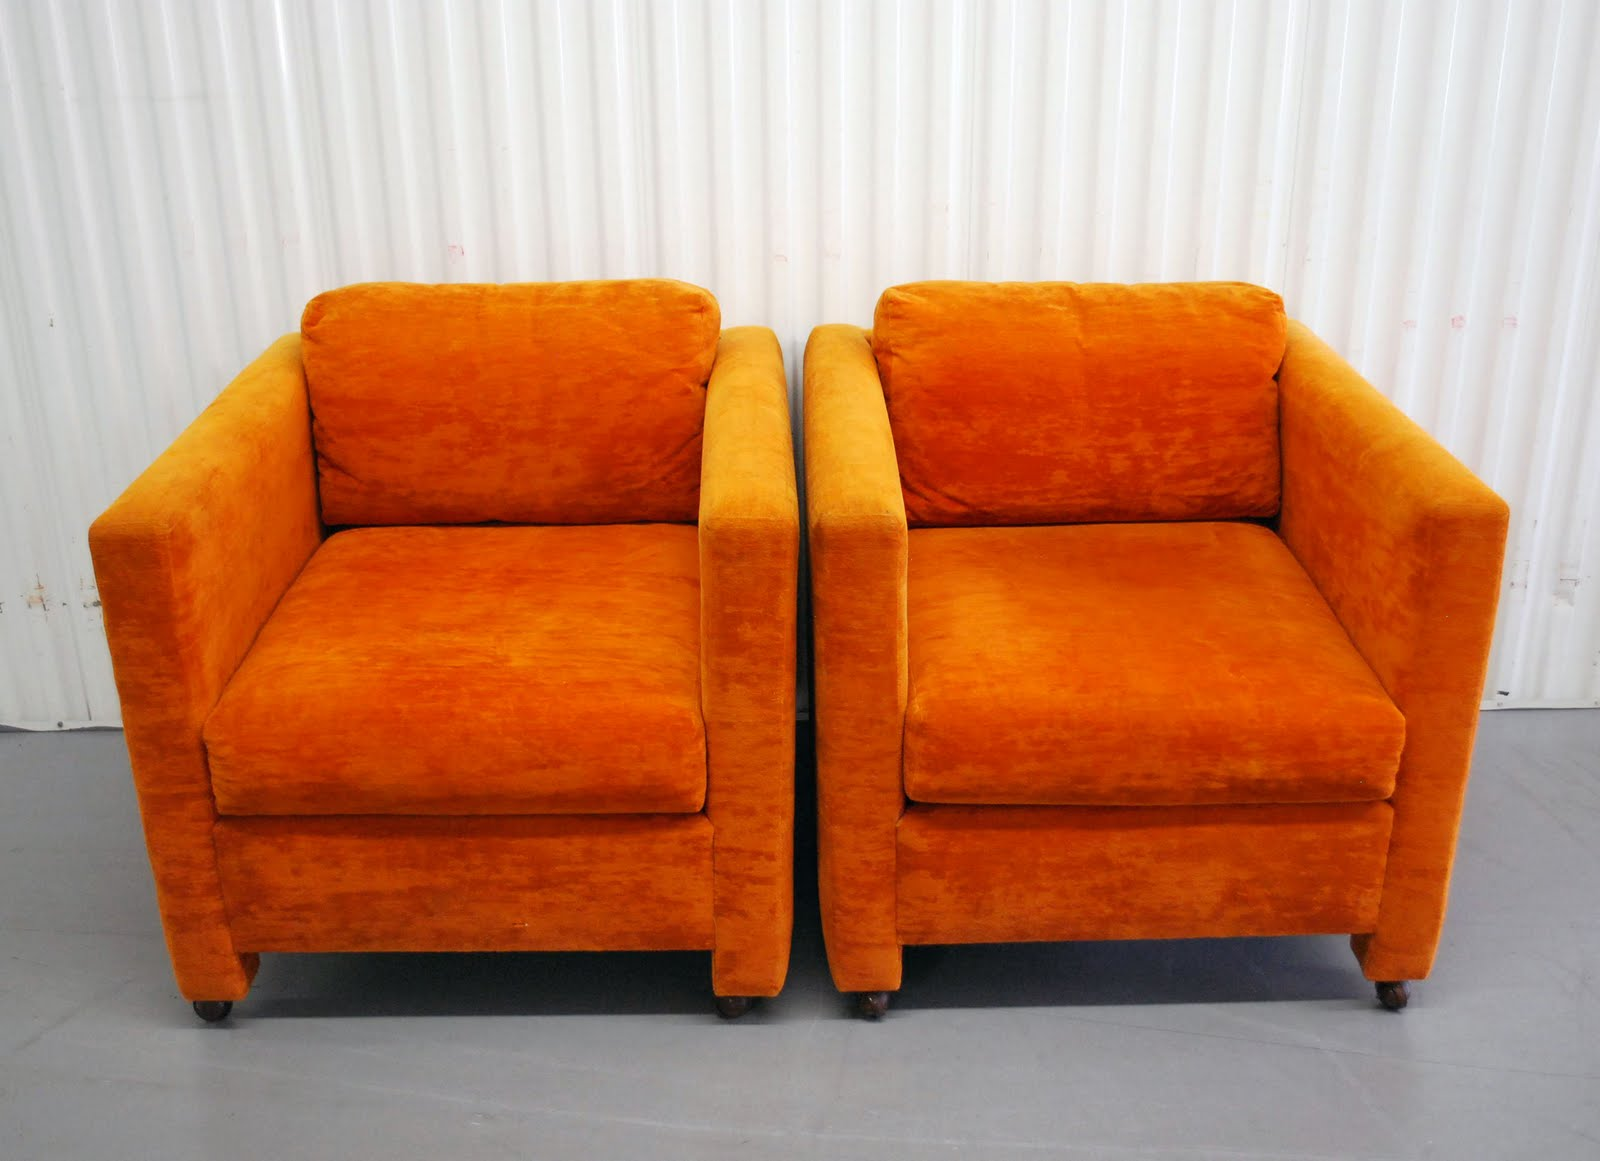 Orange Mid Century Modern Chair Junk2funk Mid Century Modern Orange Club Chairs